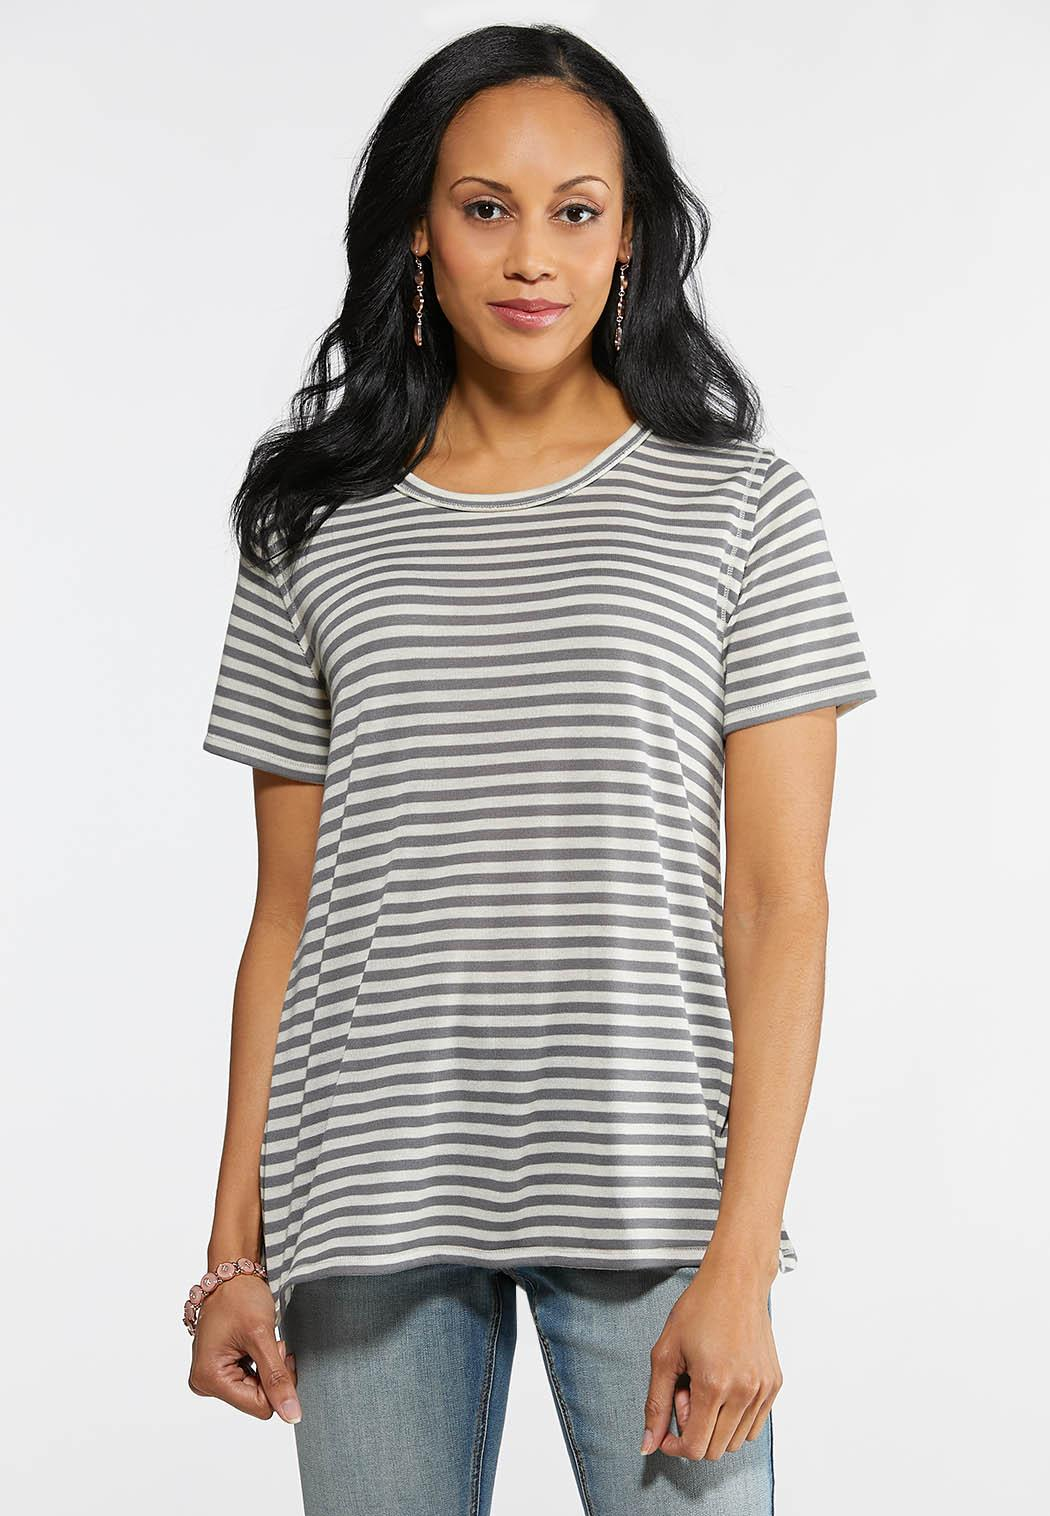 low price reasonable price original Plus Size Striped Lace Panel Back Tee Tops Cato Fashions